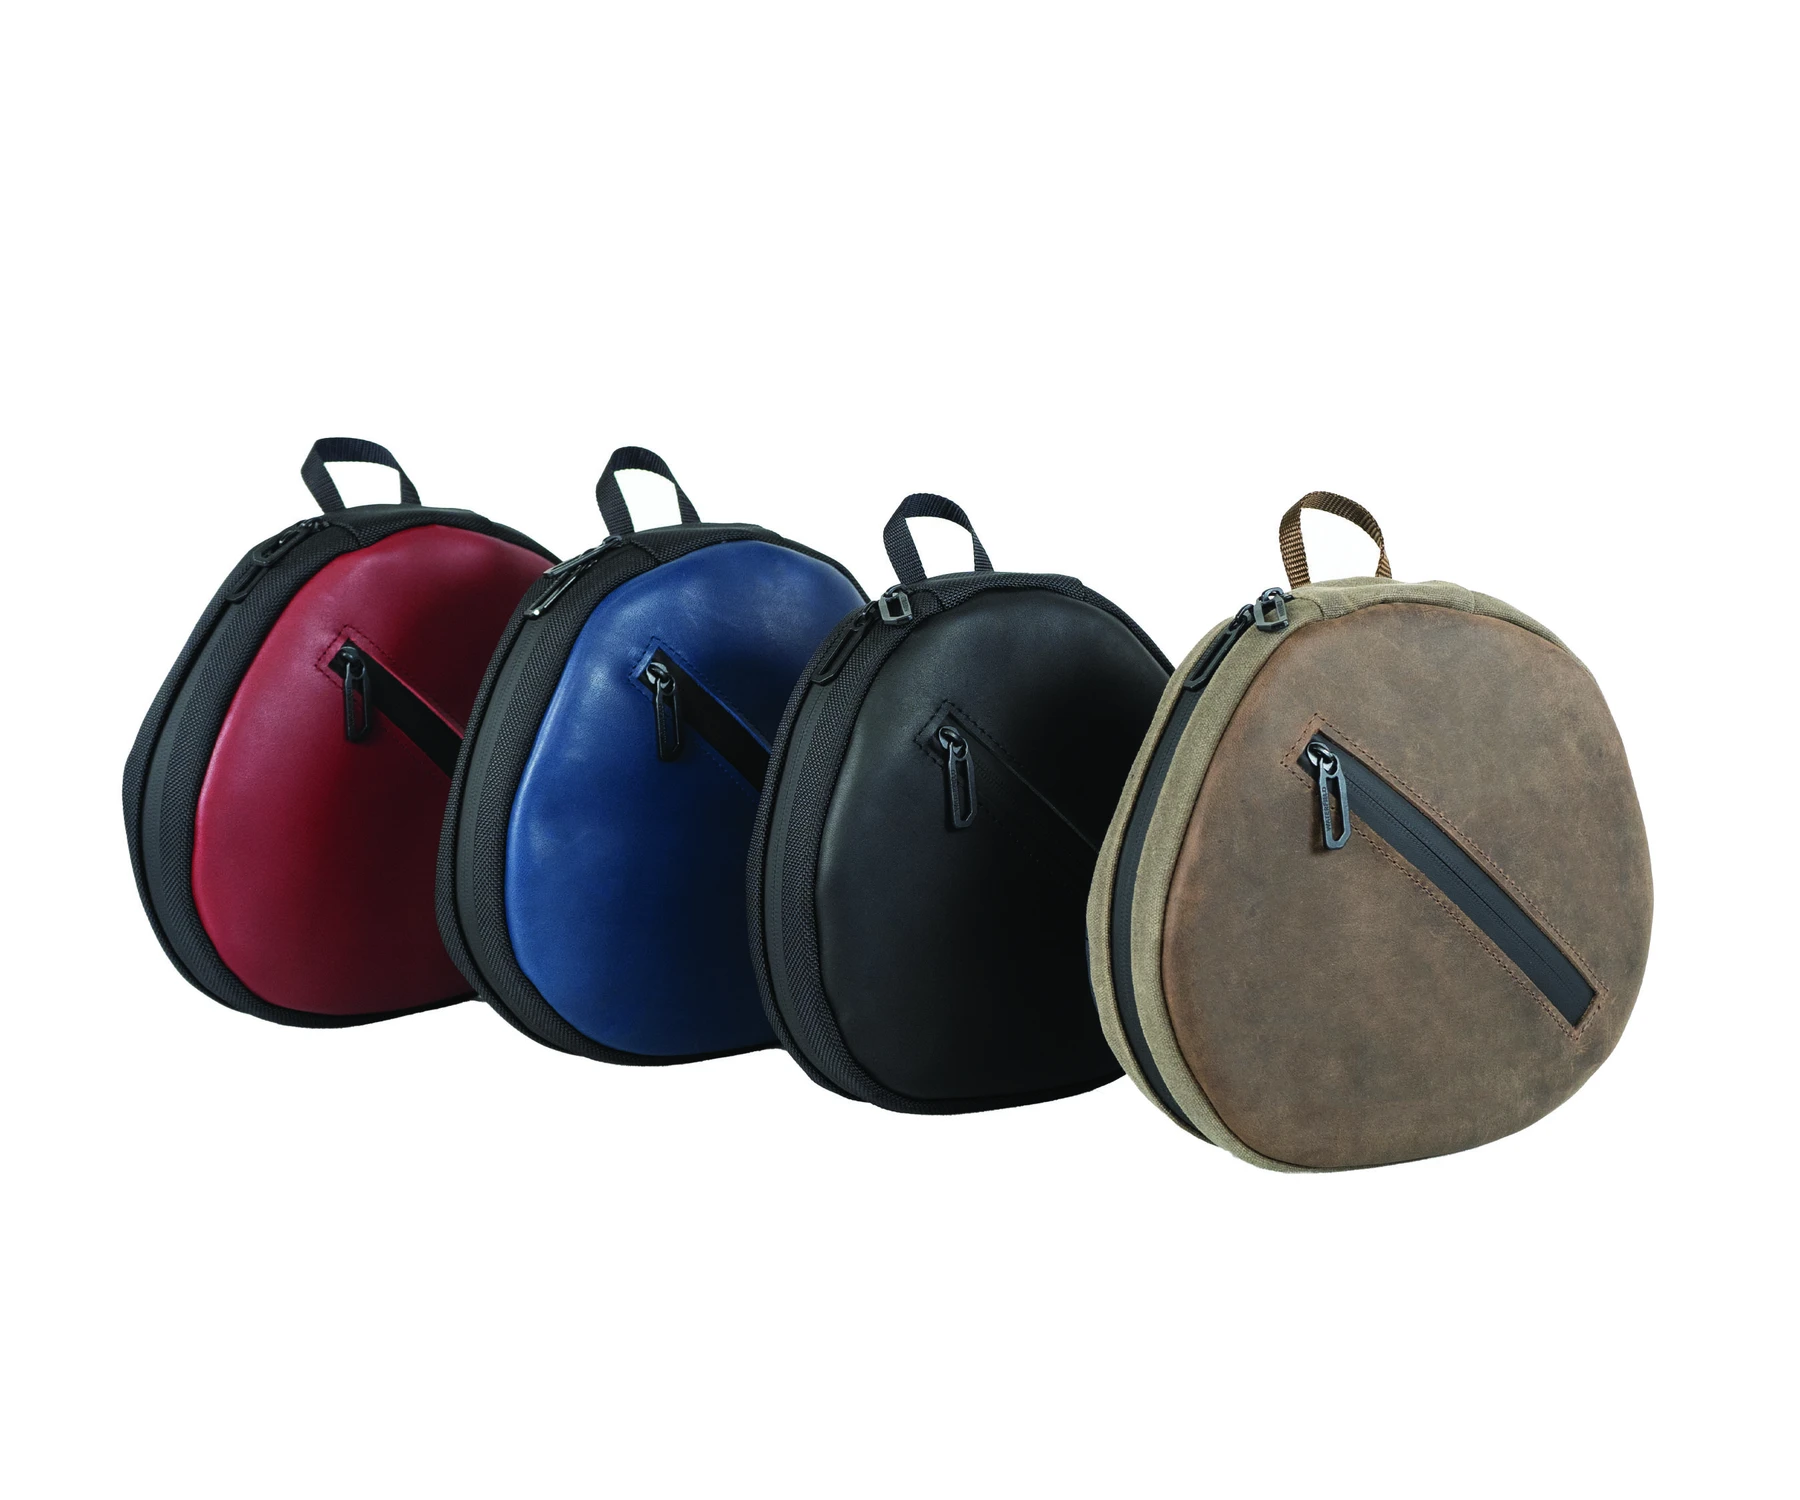 Waterfield Designs Released AirPods Max Case That Truly Protects Headphones TechRechard